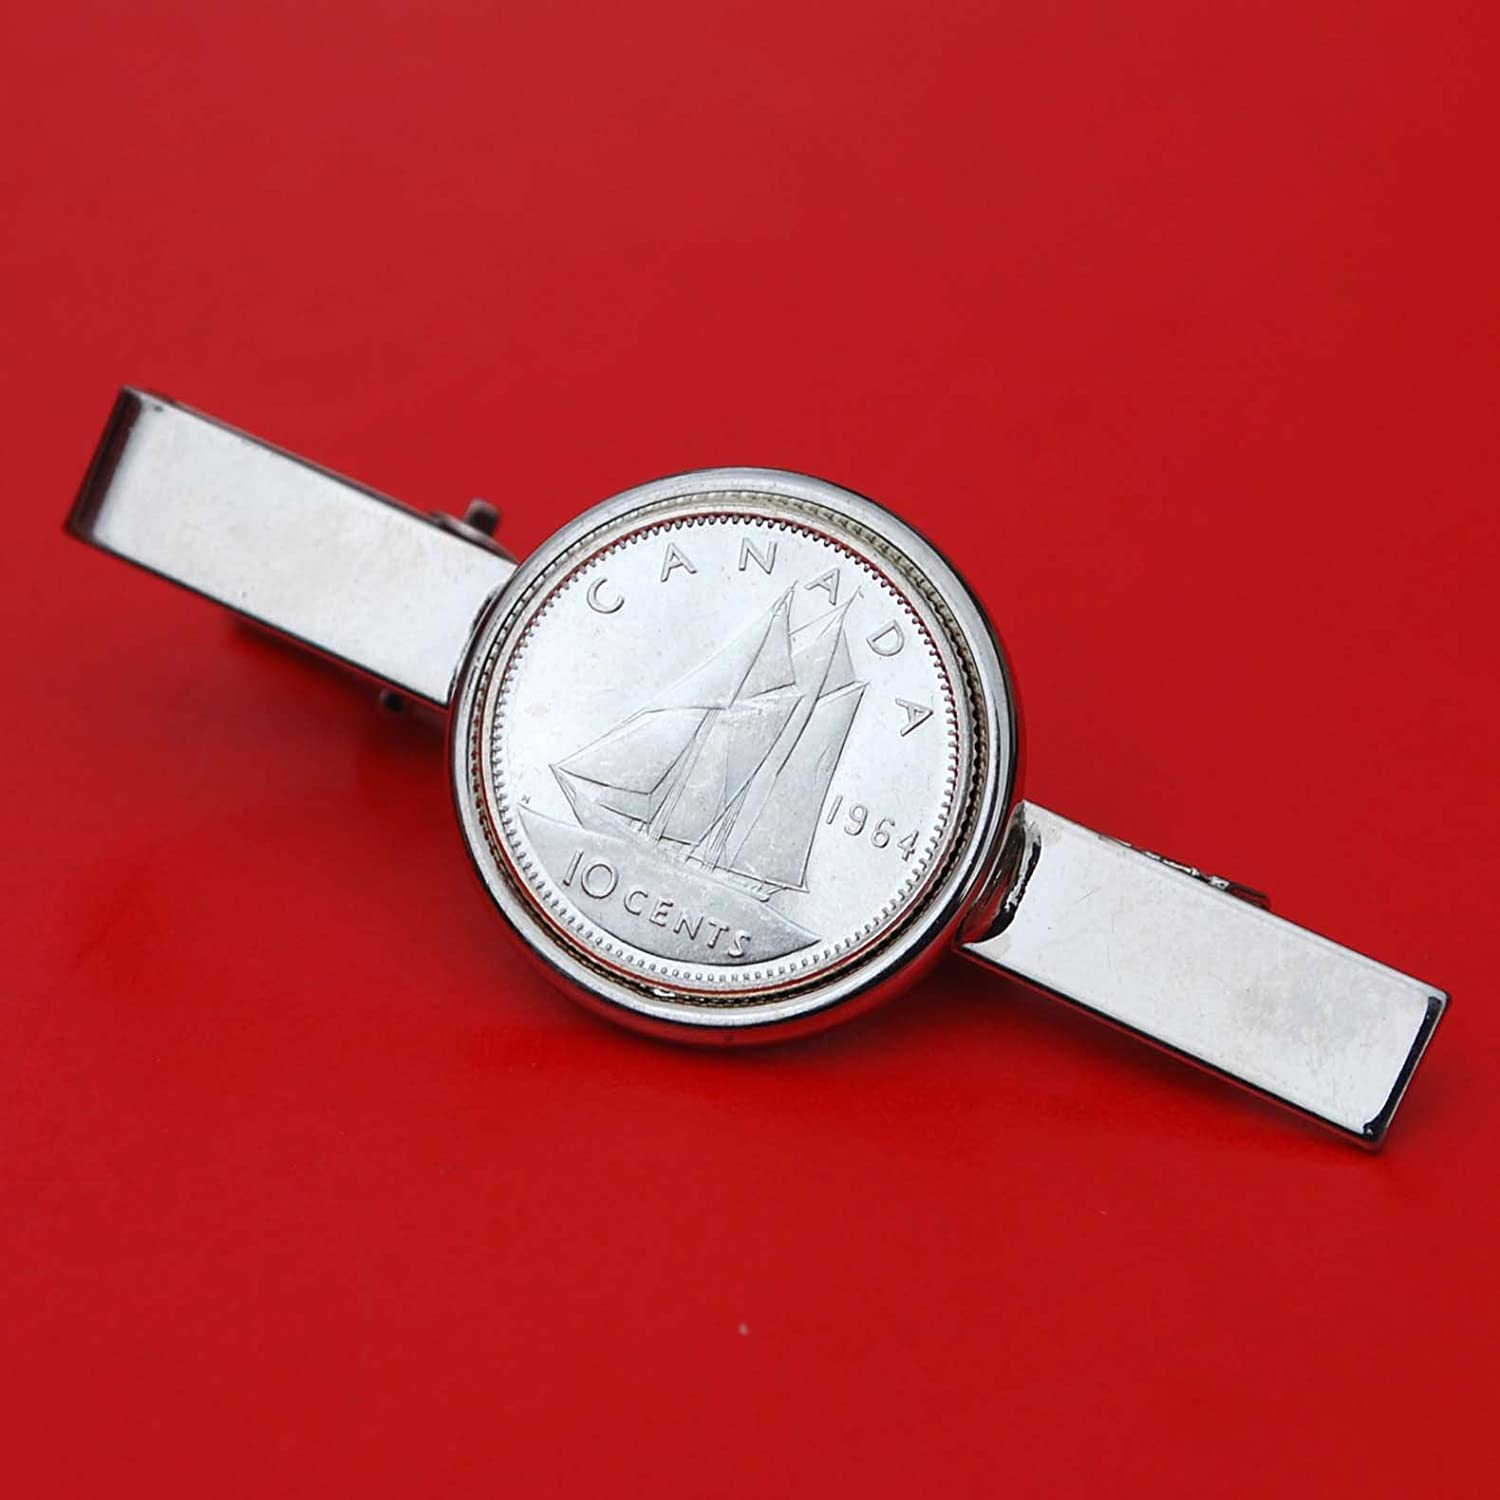 Canada 1964 10 Cents Gem BU Uncirculated 80% Silver Coin Silver Plated Tie Clip Clasp Bar - Bluenose Sailing